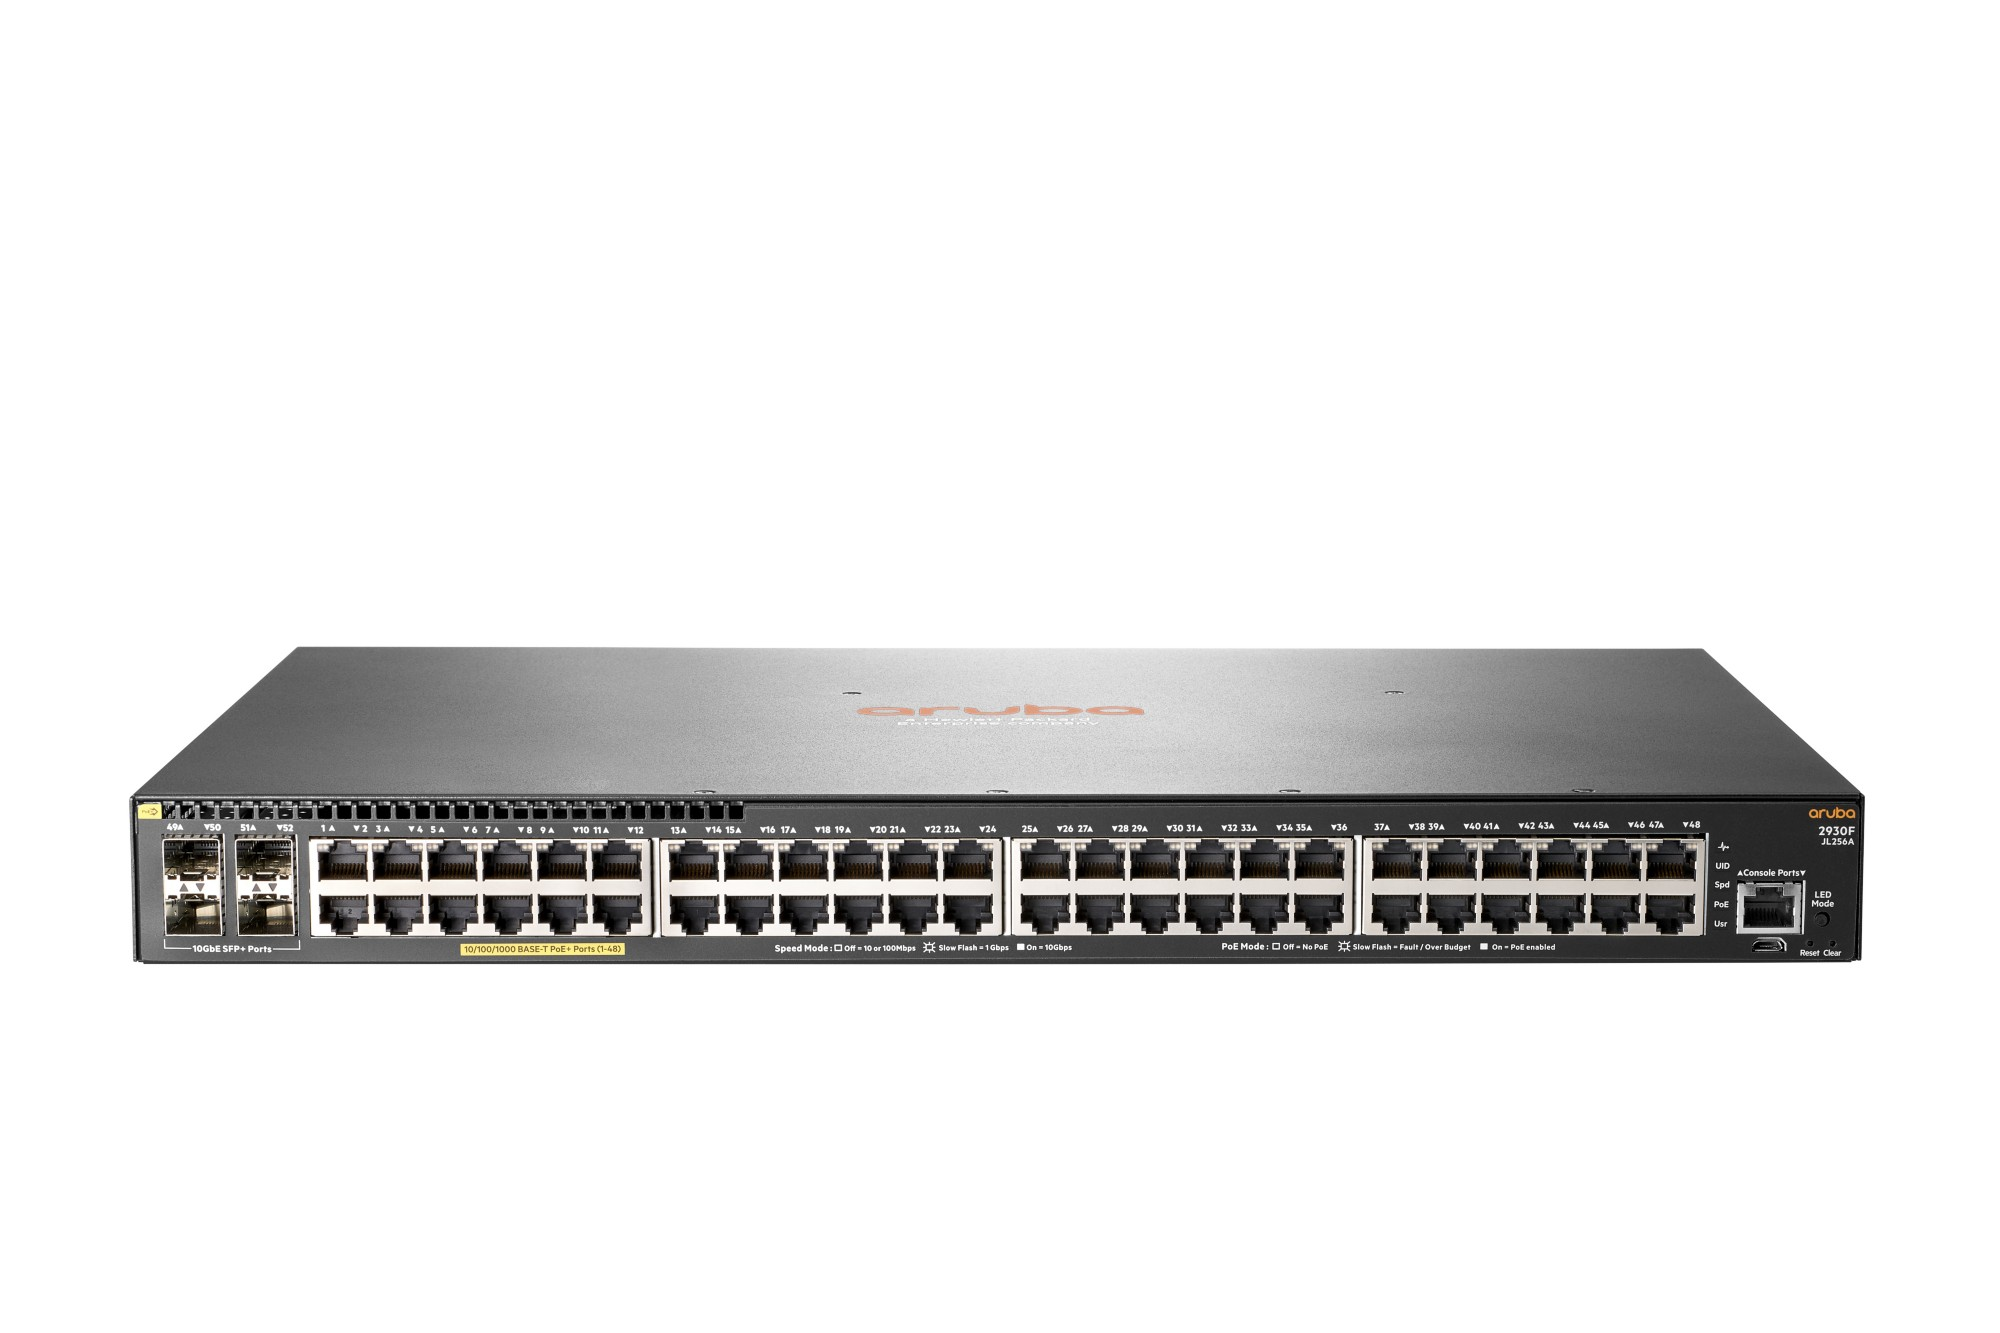 HPE JL256A#ABB ARUBA 2930F 48G POE+ 4SFP+ MANAGED NETWORK SWITCH L3 GIGABIT ETHERNET (10/100/1000) POWER OVER (POE) 1U GREY